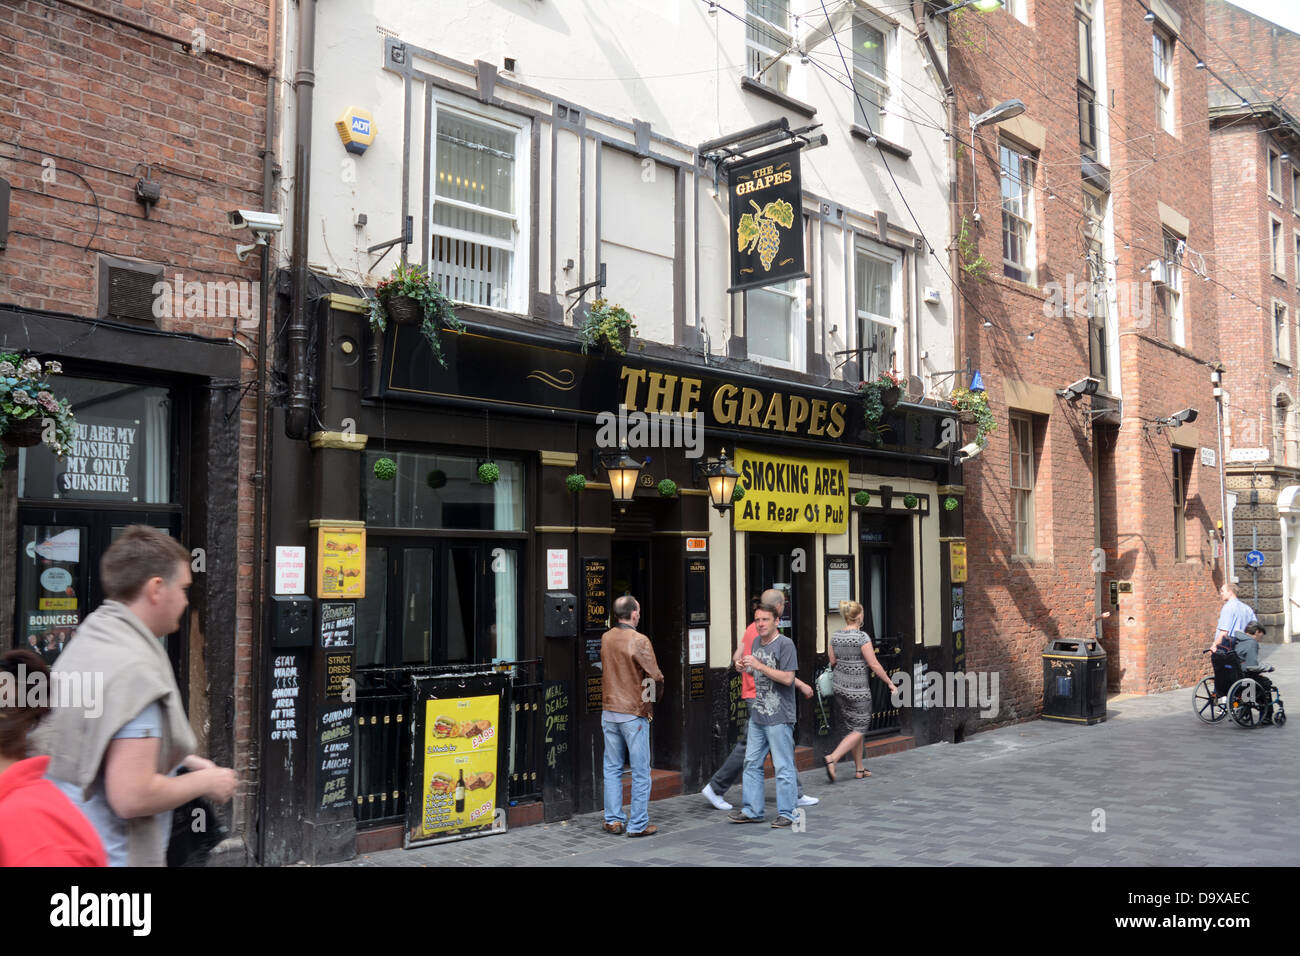 The Grapes pub in Mathew St Liverpool opposite the site of the original Cavern Club. The Beatles used to drink here - Stock Image